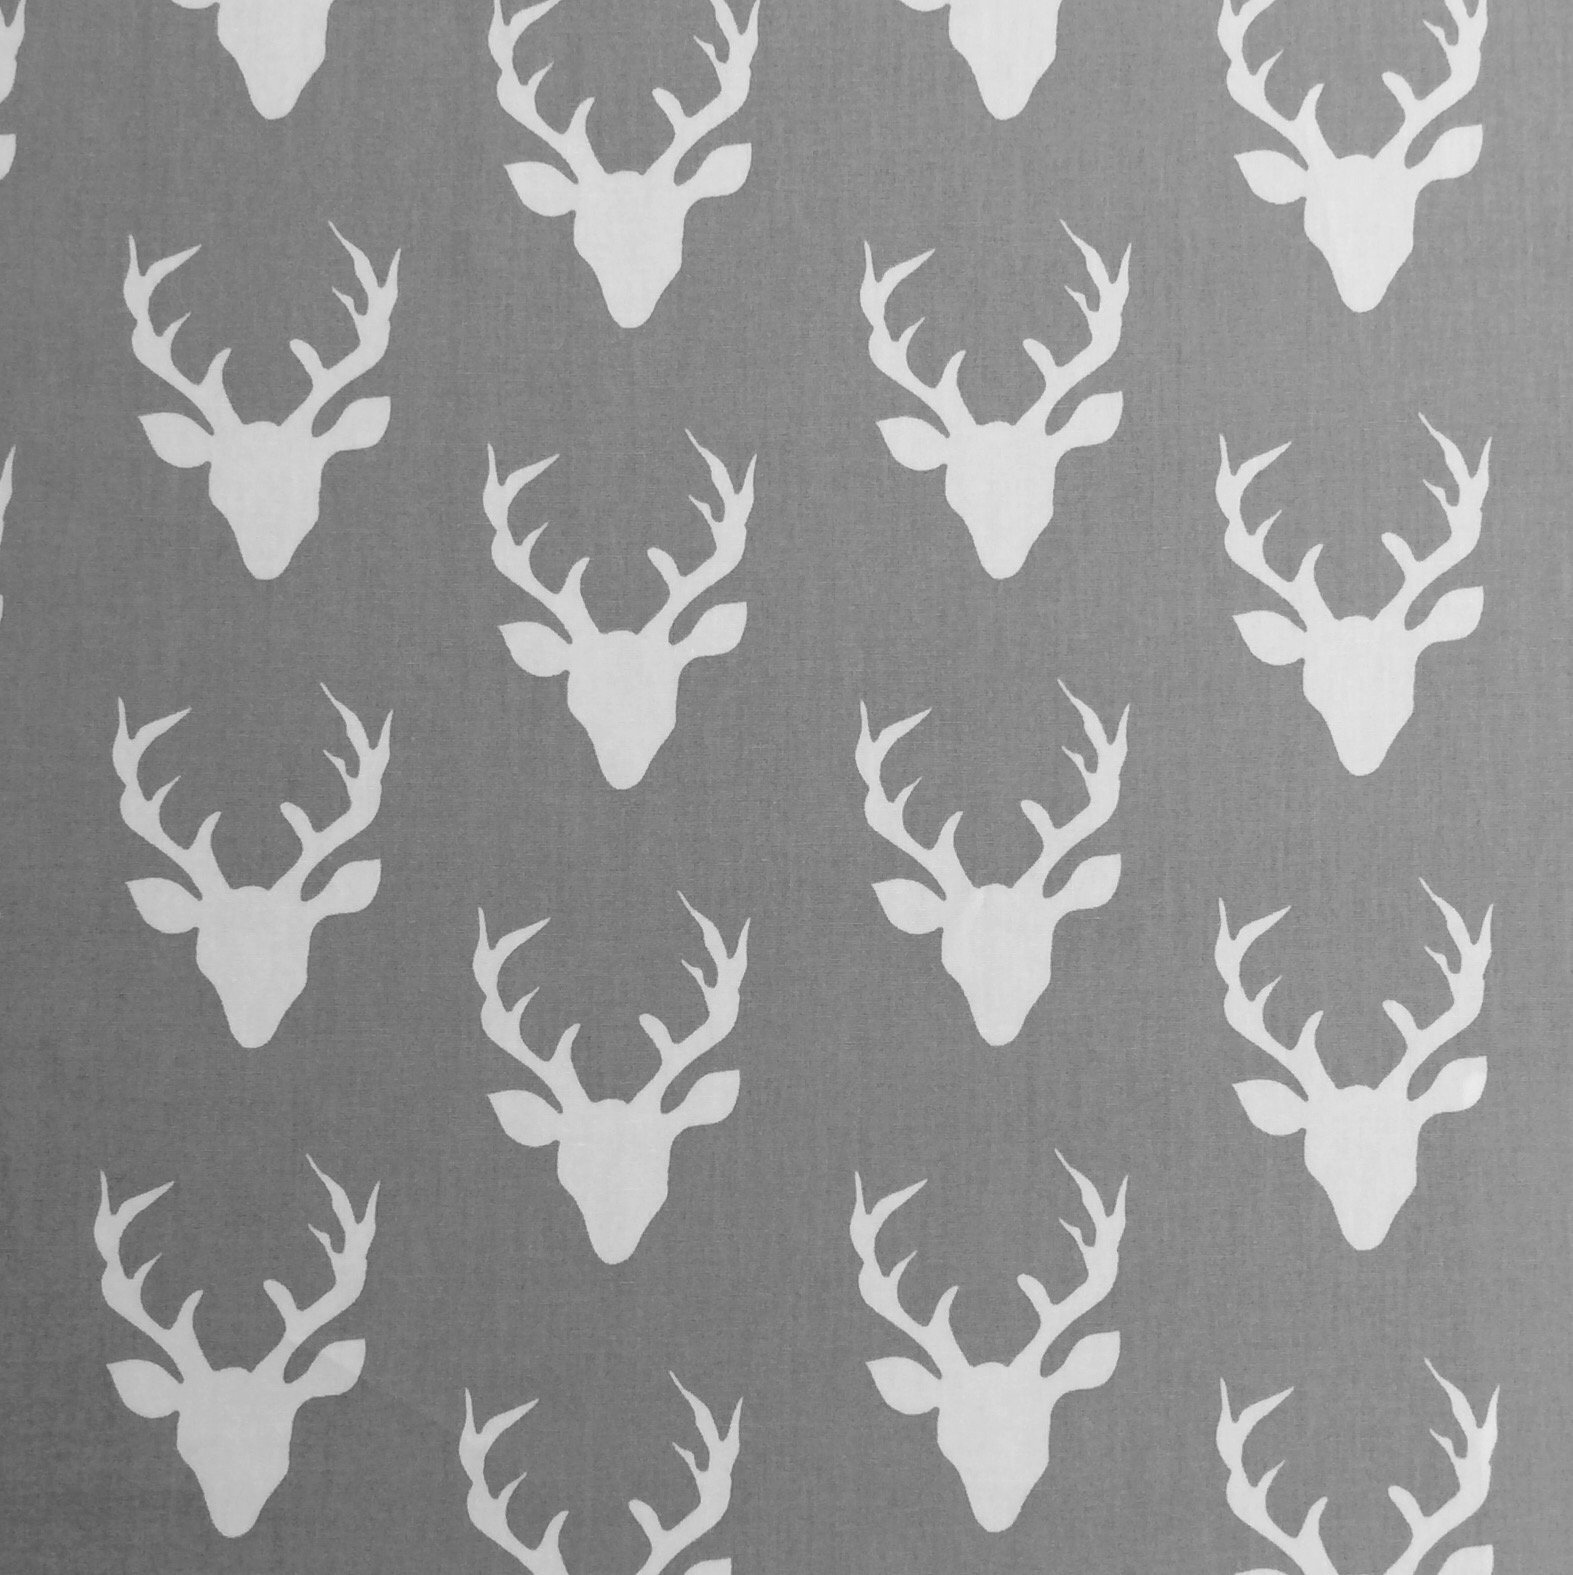 Deer Silhouette  Forest Scandinavian AR31 Cameo Antlers Cotton Quilt Fabric